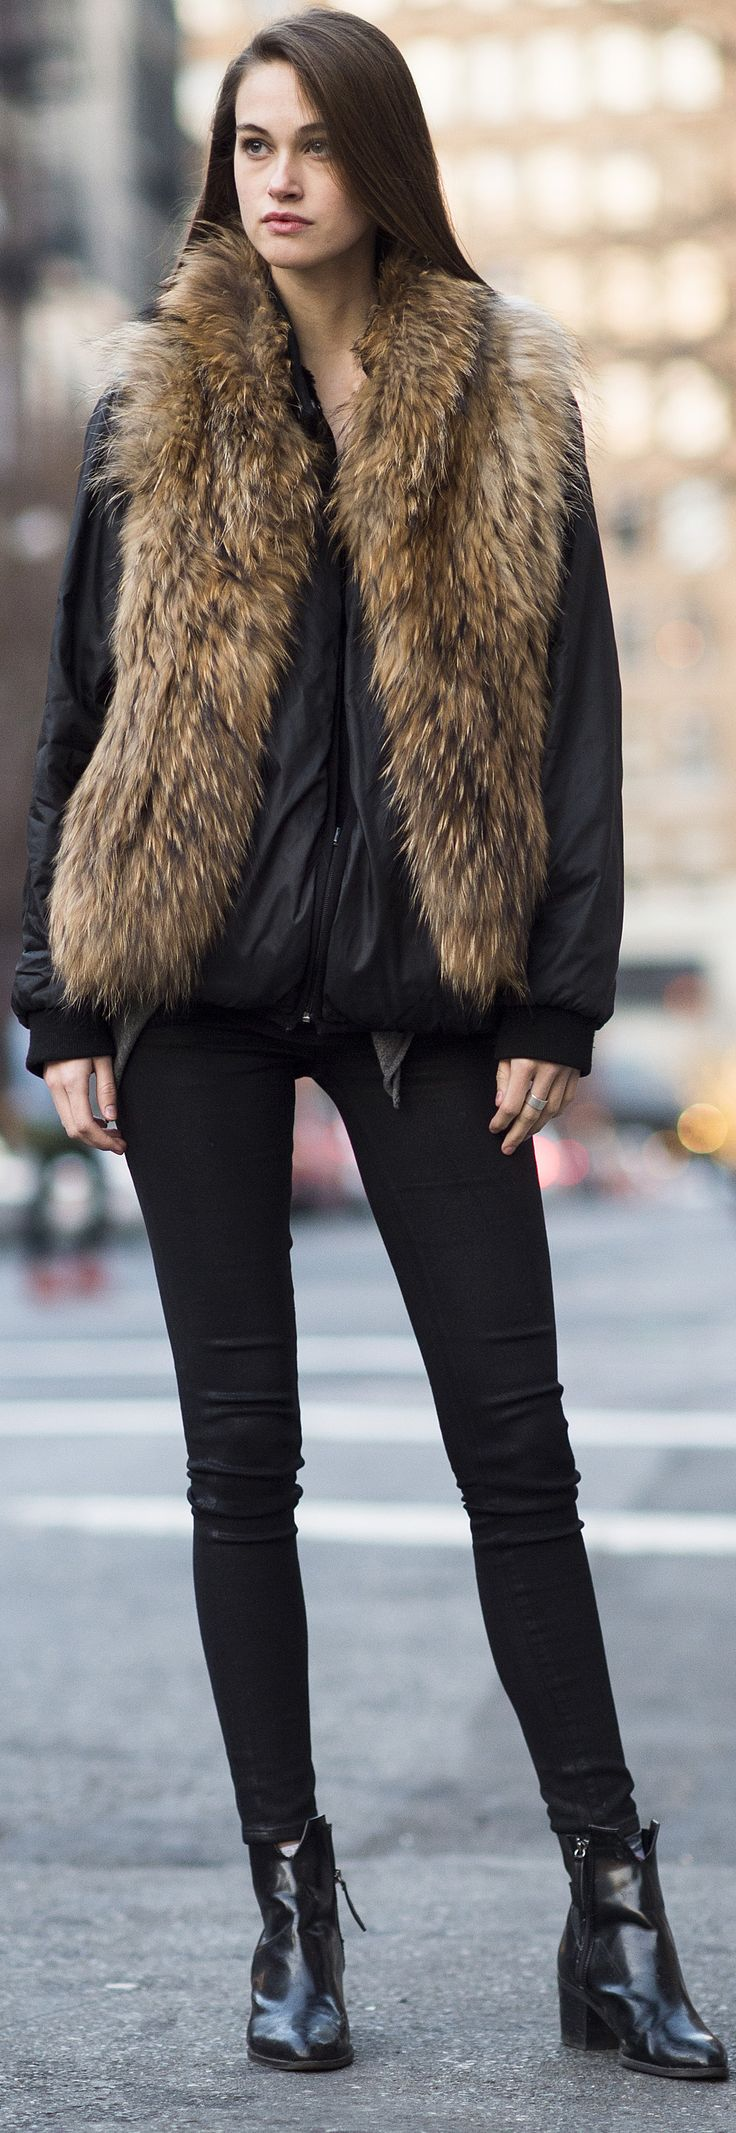 30 best Winter Wear images on Pinterest